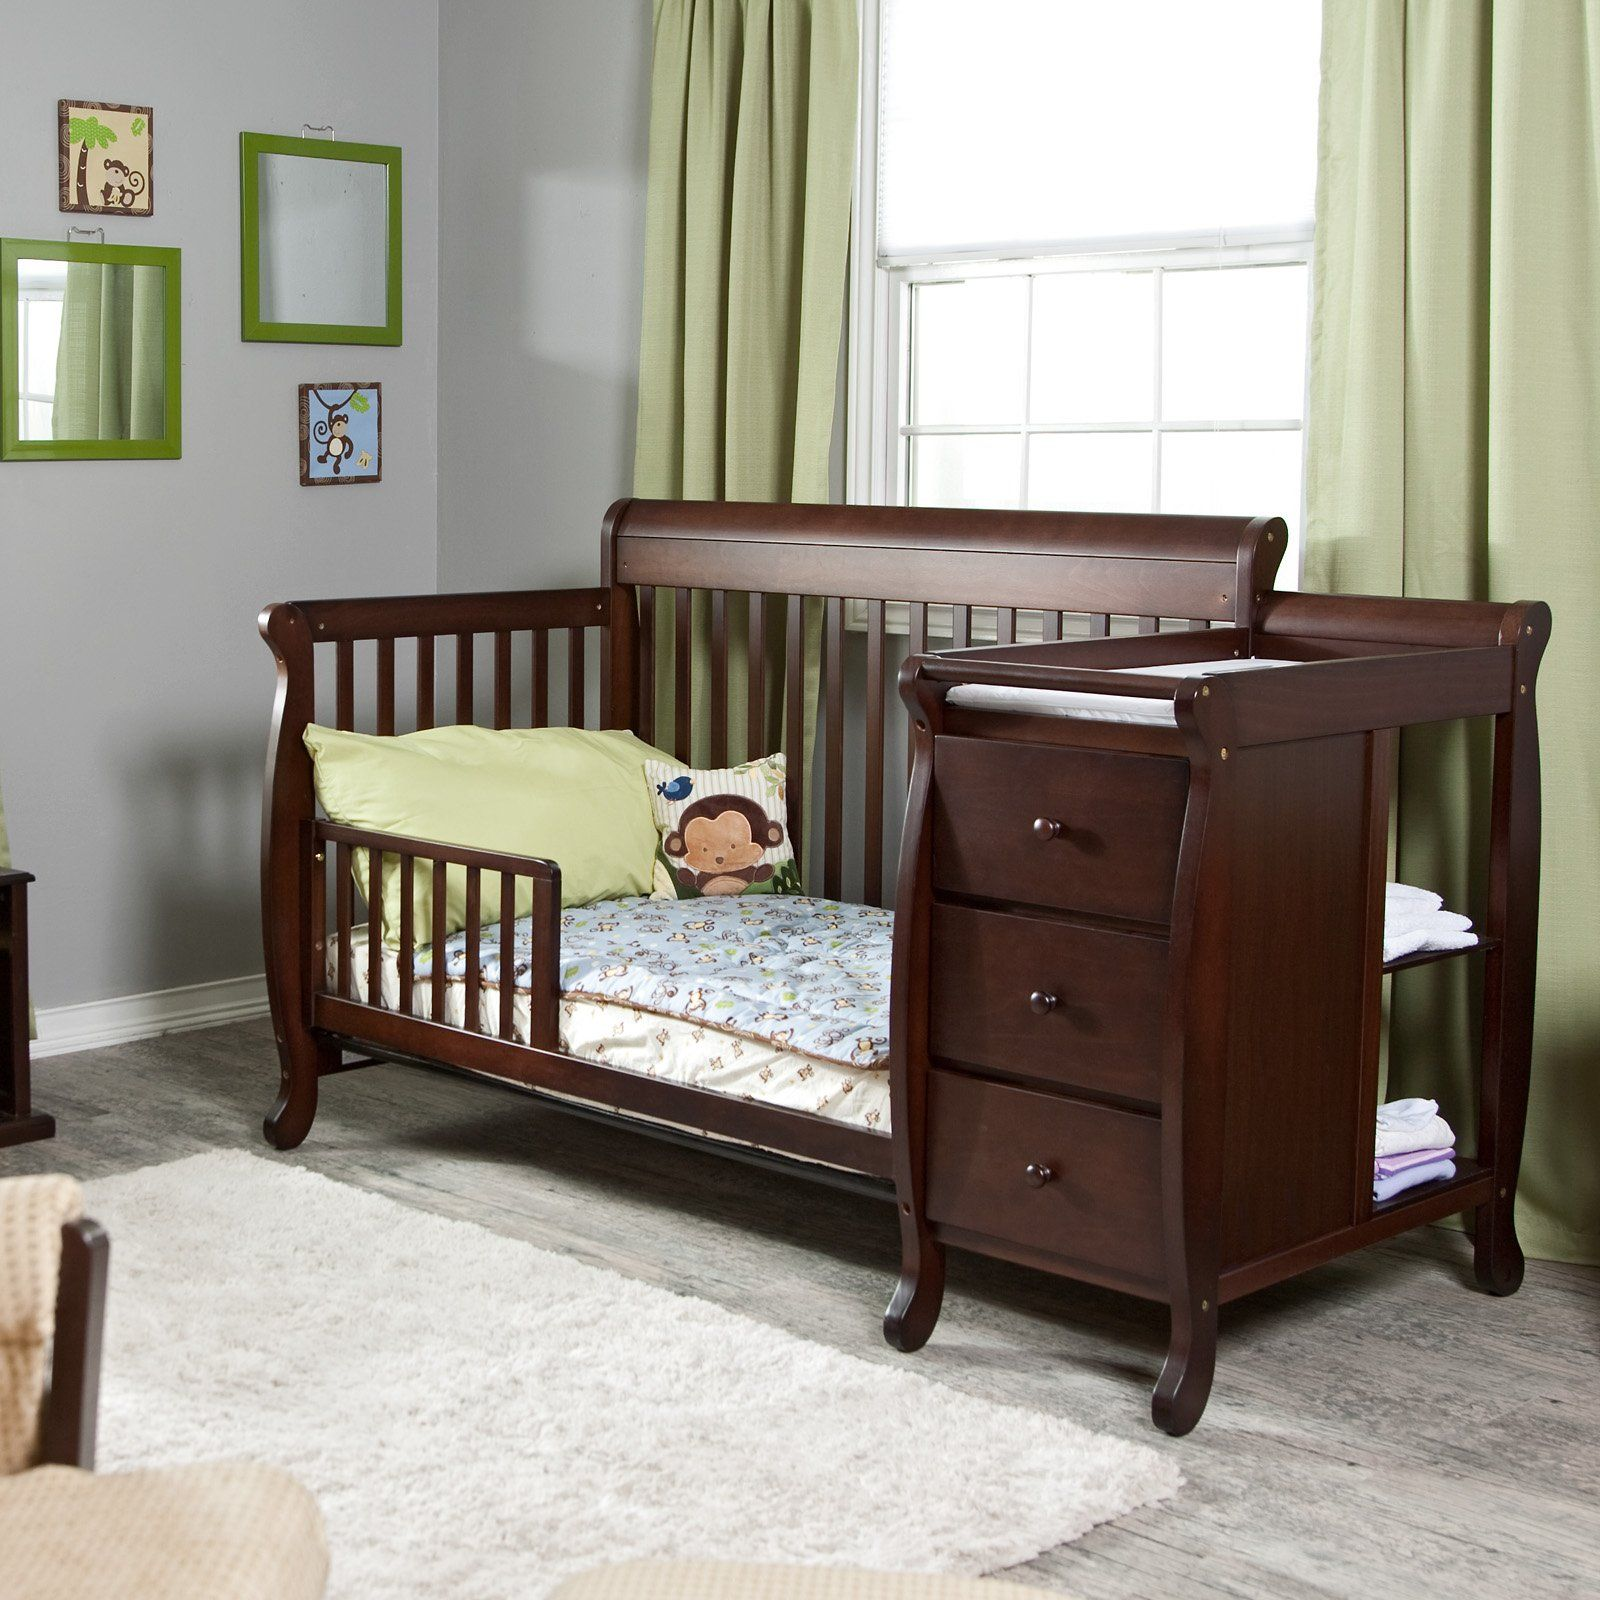 Convertible Crib And Changing Table Baby Fall S Room